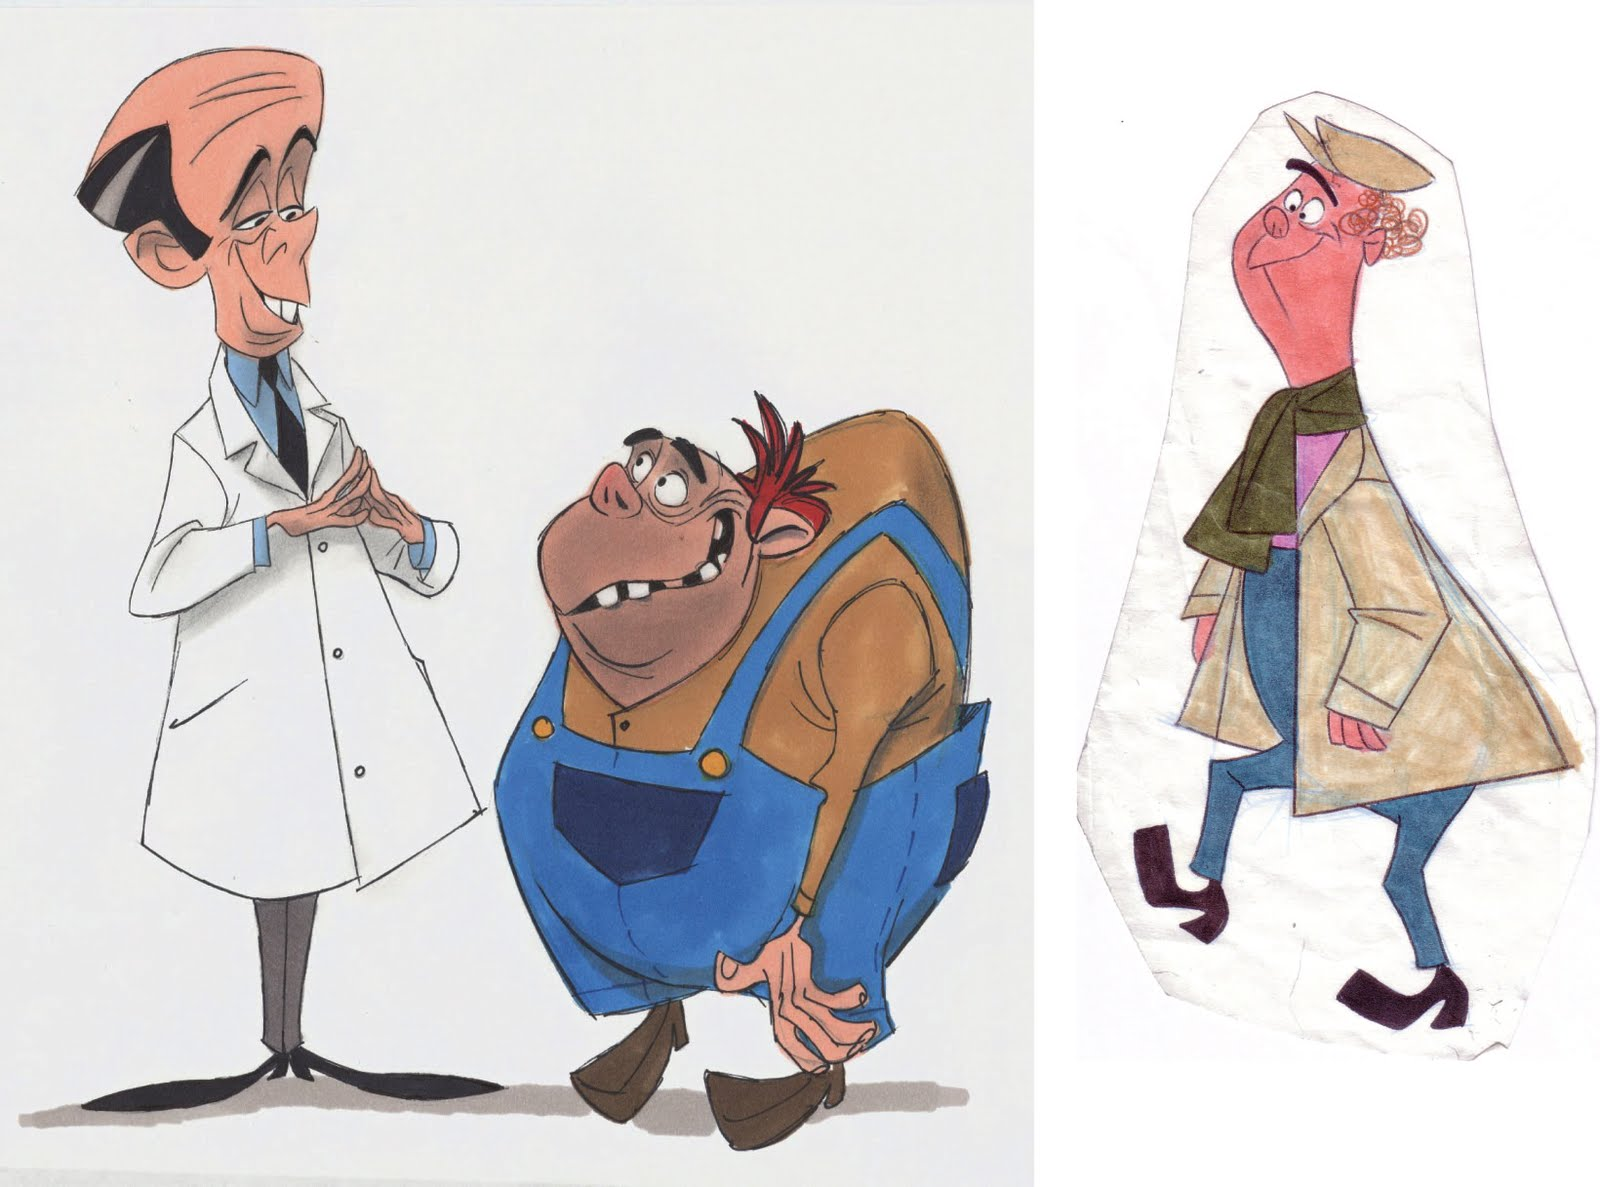 Character Design Site : Playful traditional character design for sam owens by b tibéri